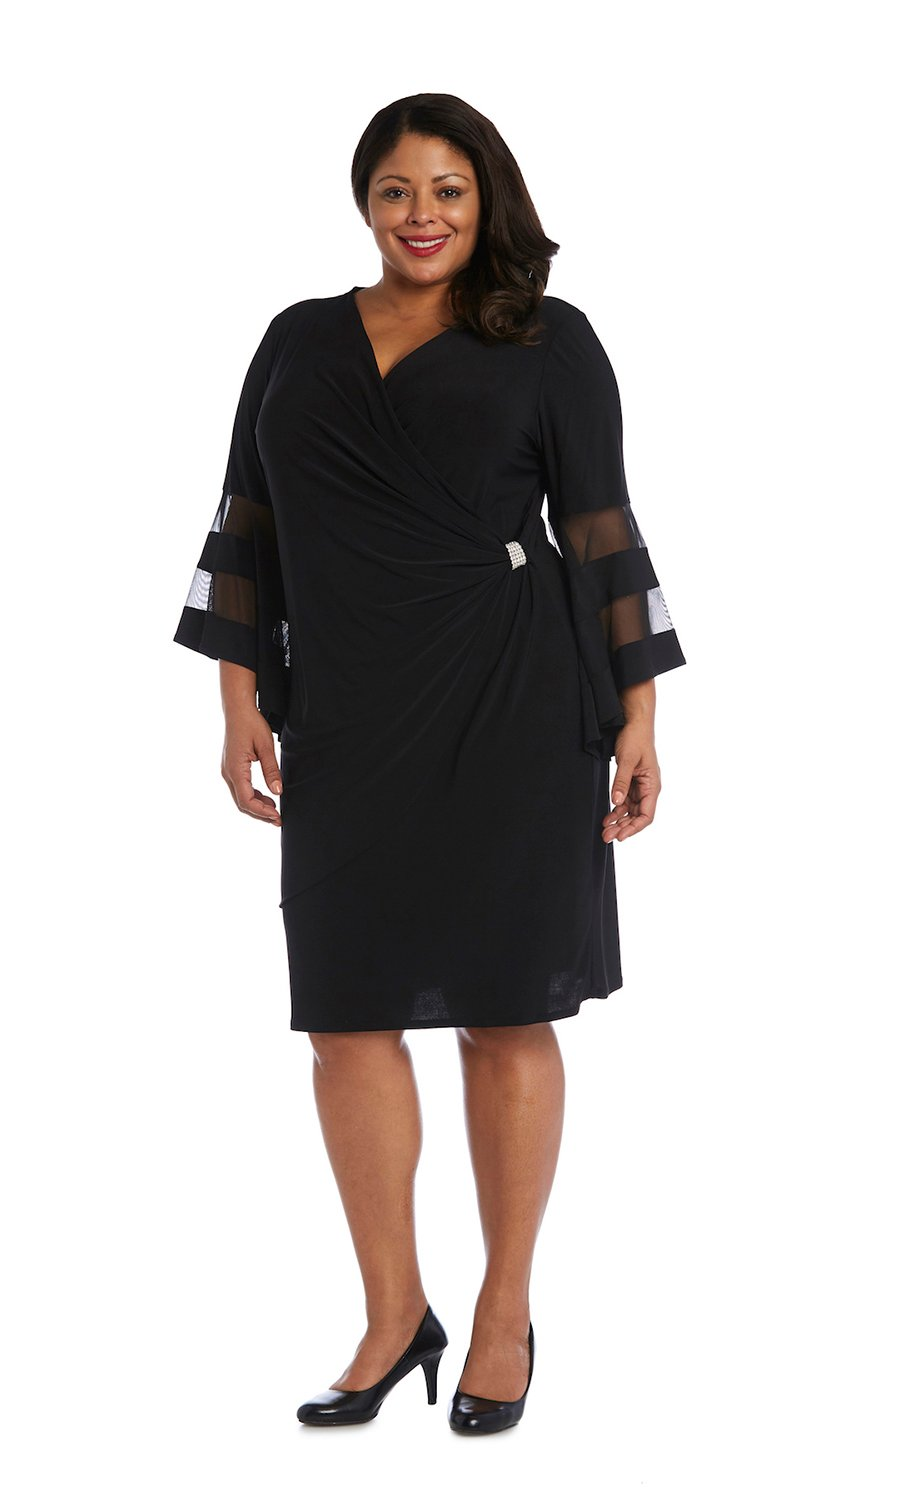 Illusion Bell Sleeve Dress with Rush Detail at Waist -Black - Front